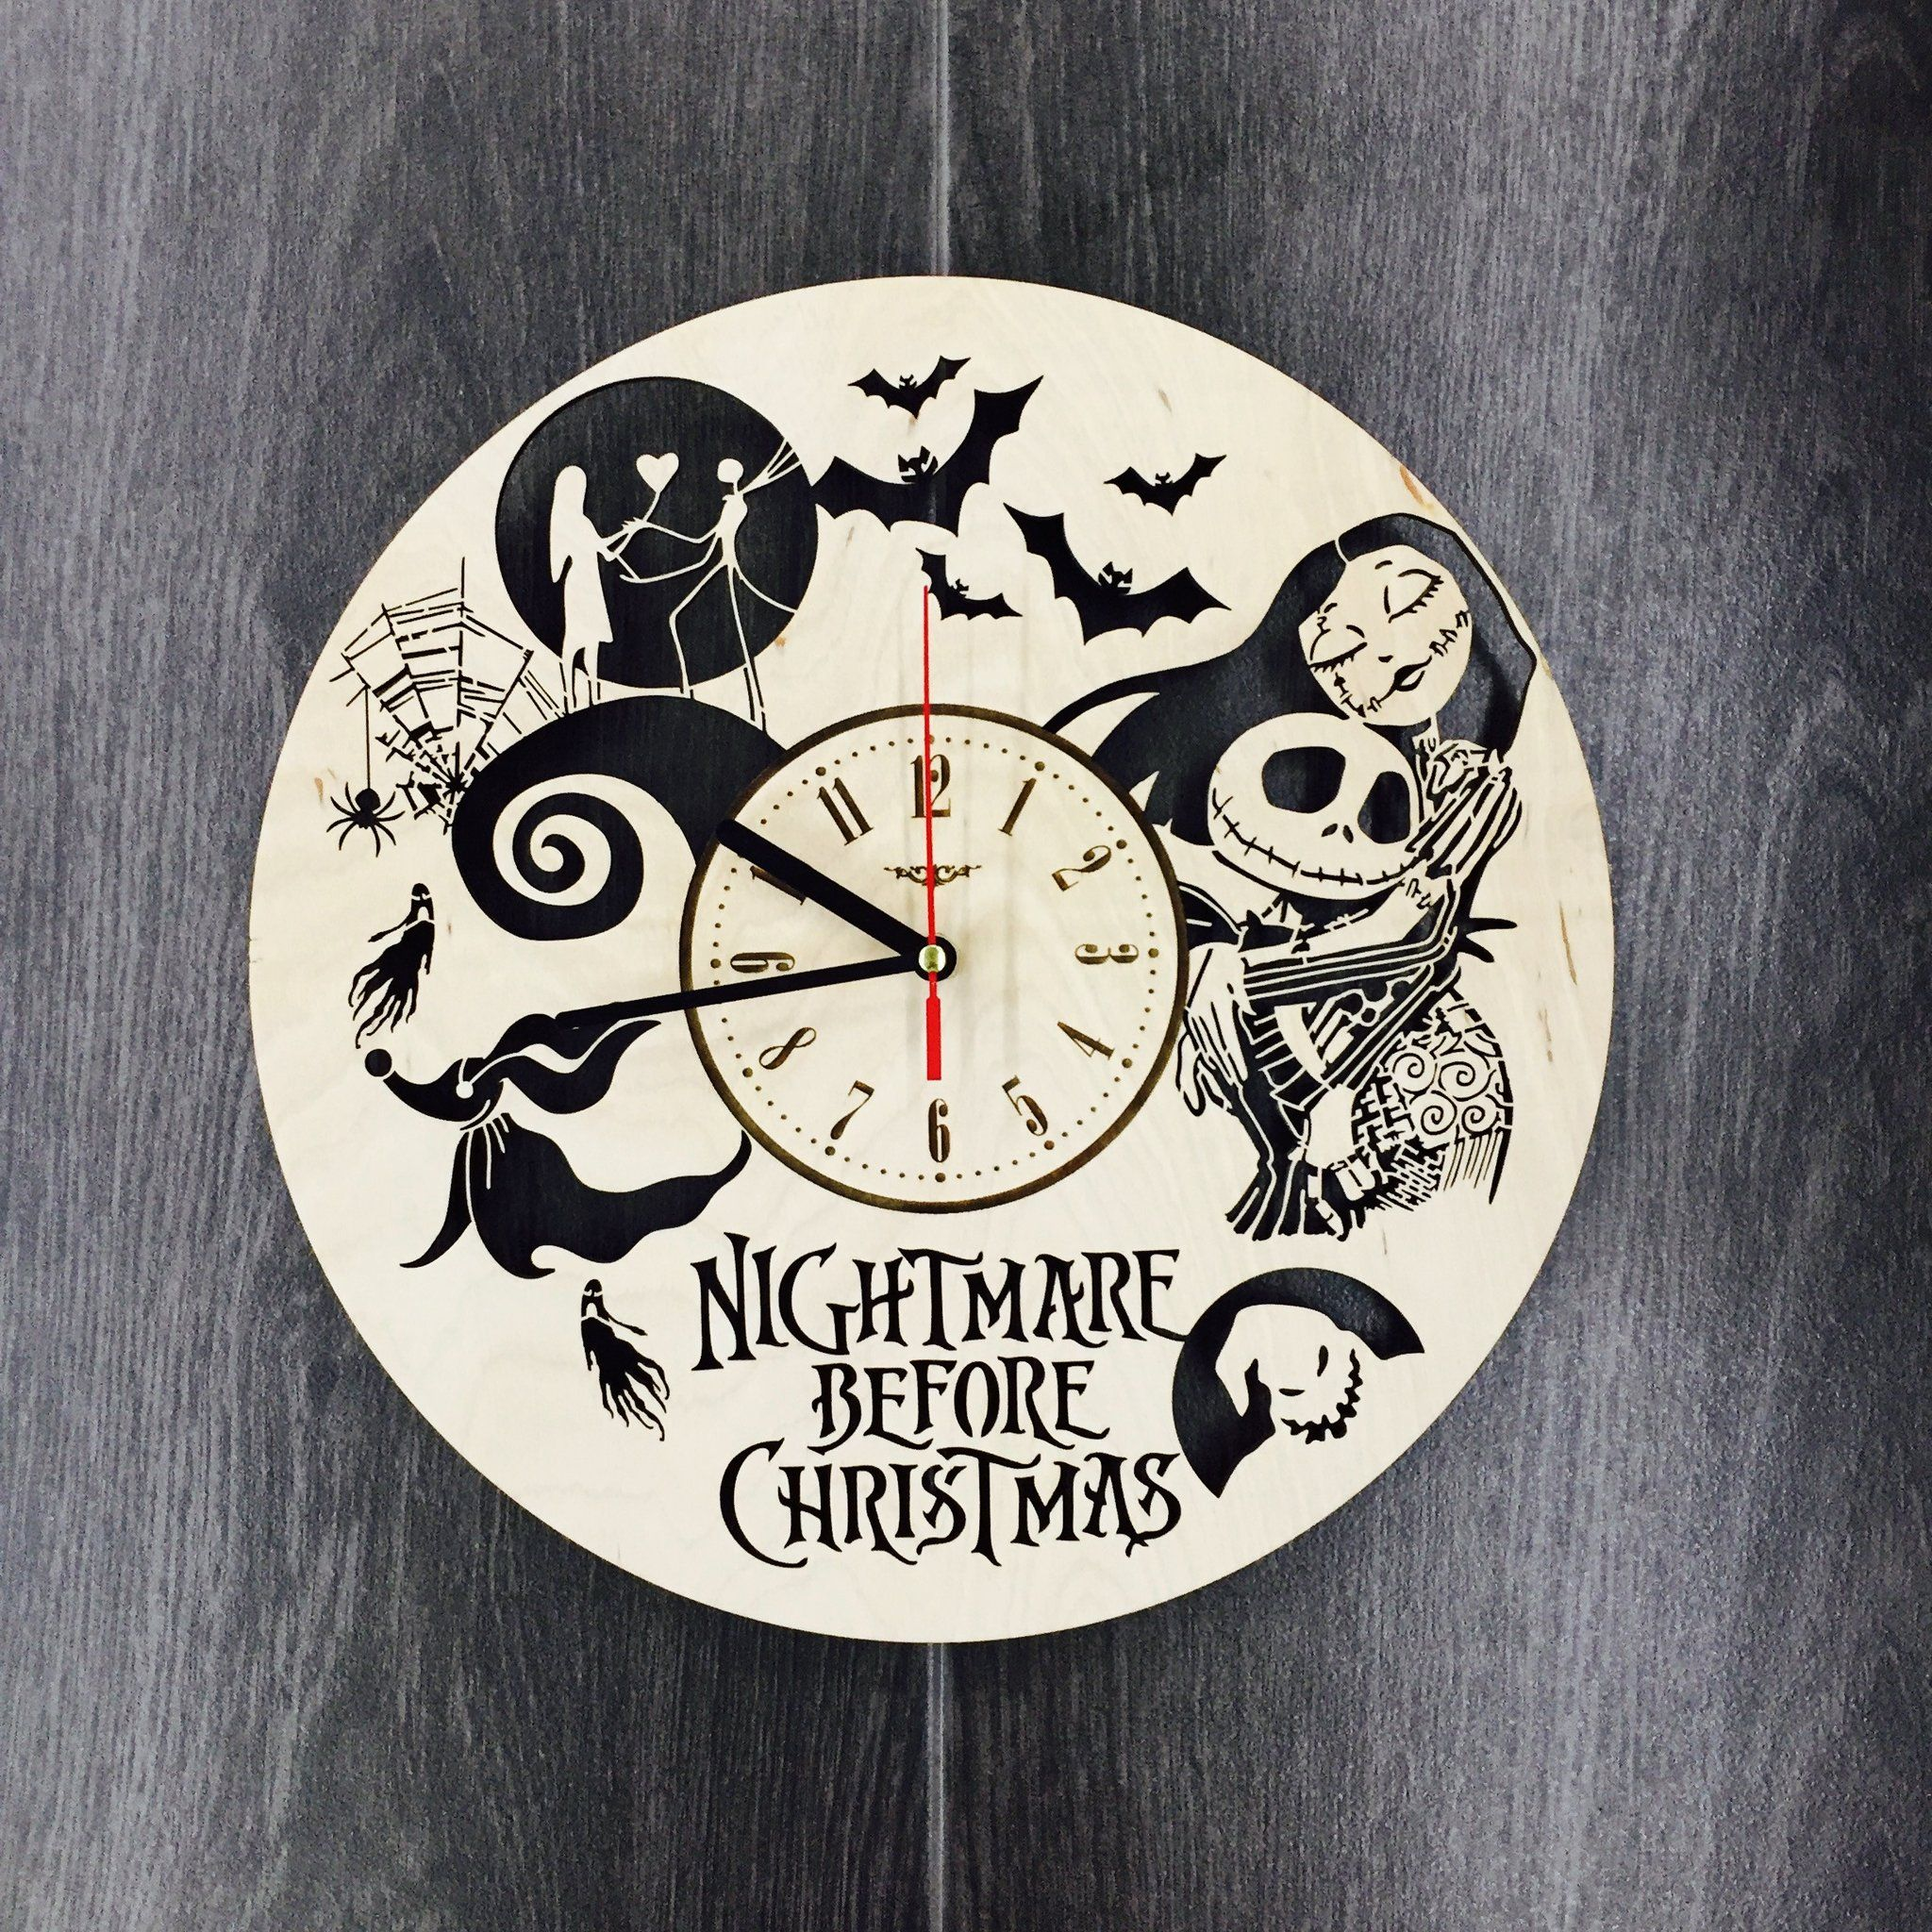 Cool Nightmare Before Christmas Gifts: Nightmare Before Christmas Wall Wood Clock $31.99 Size